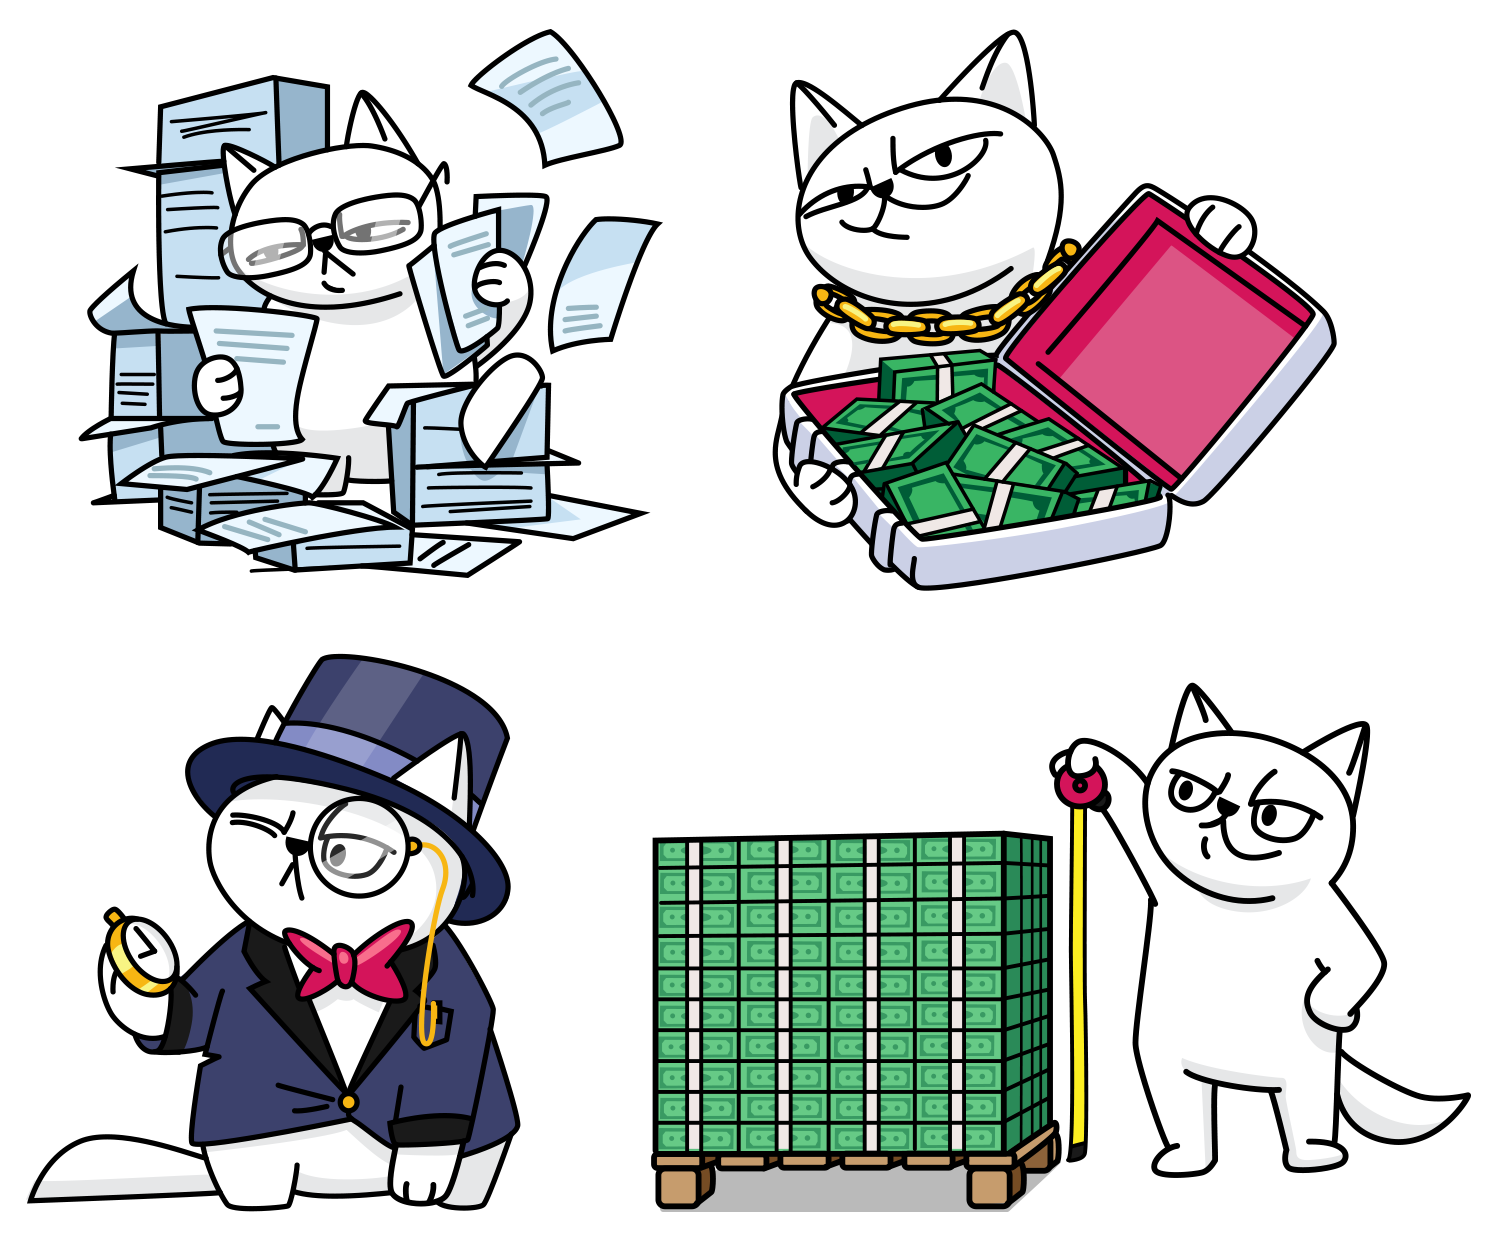 monobank stickers QR cat, drawing stickers with a cat. monobank sticker design for infographics.